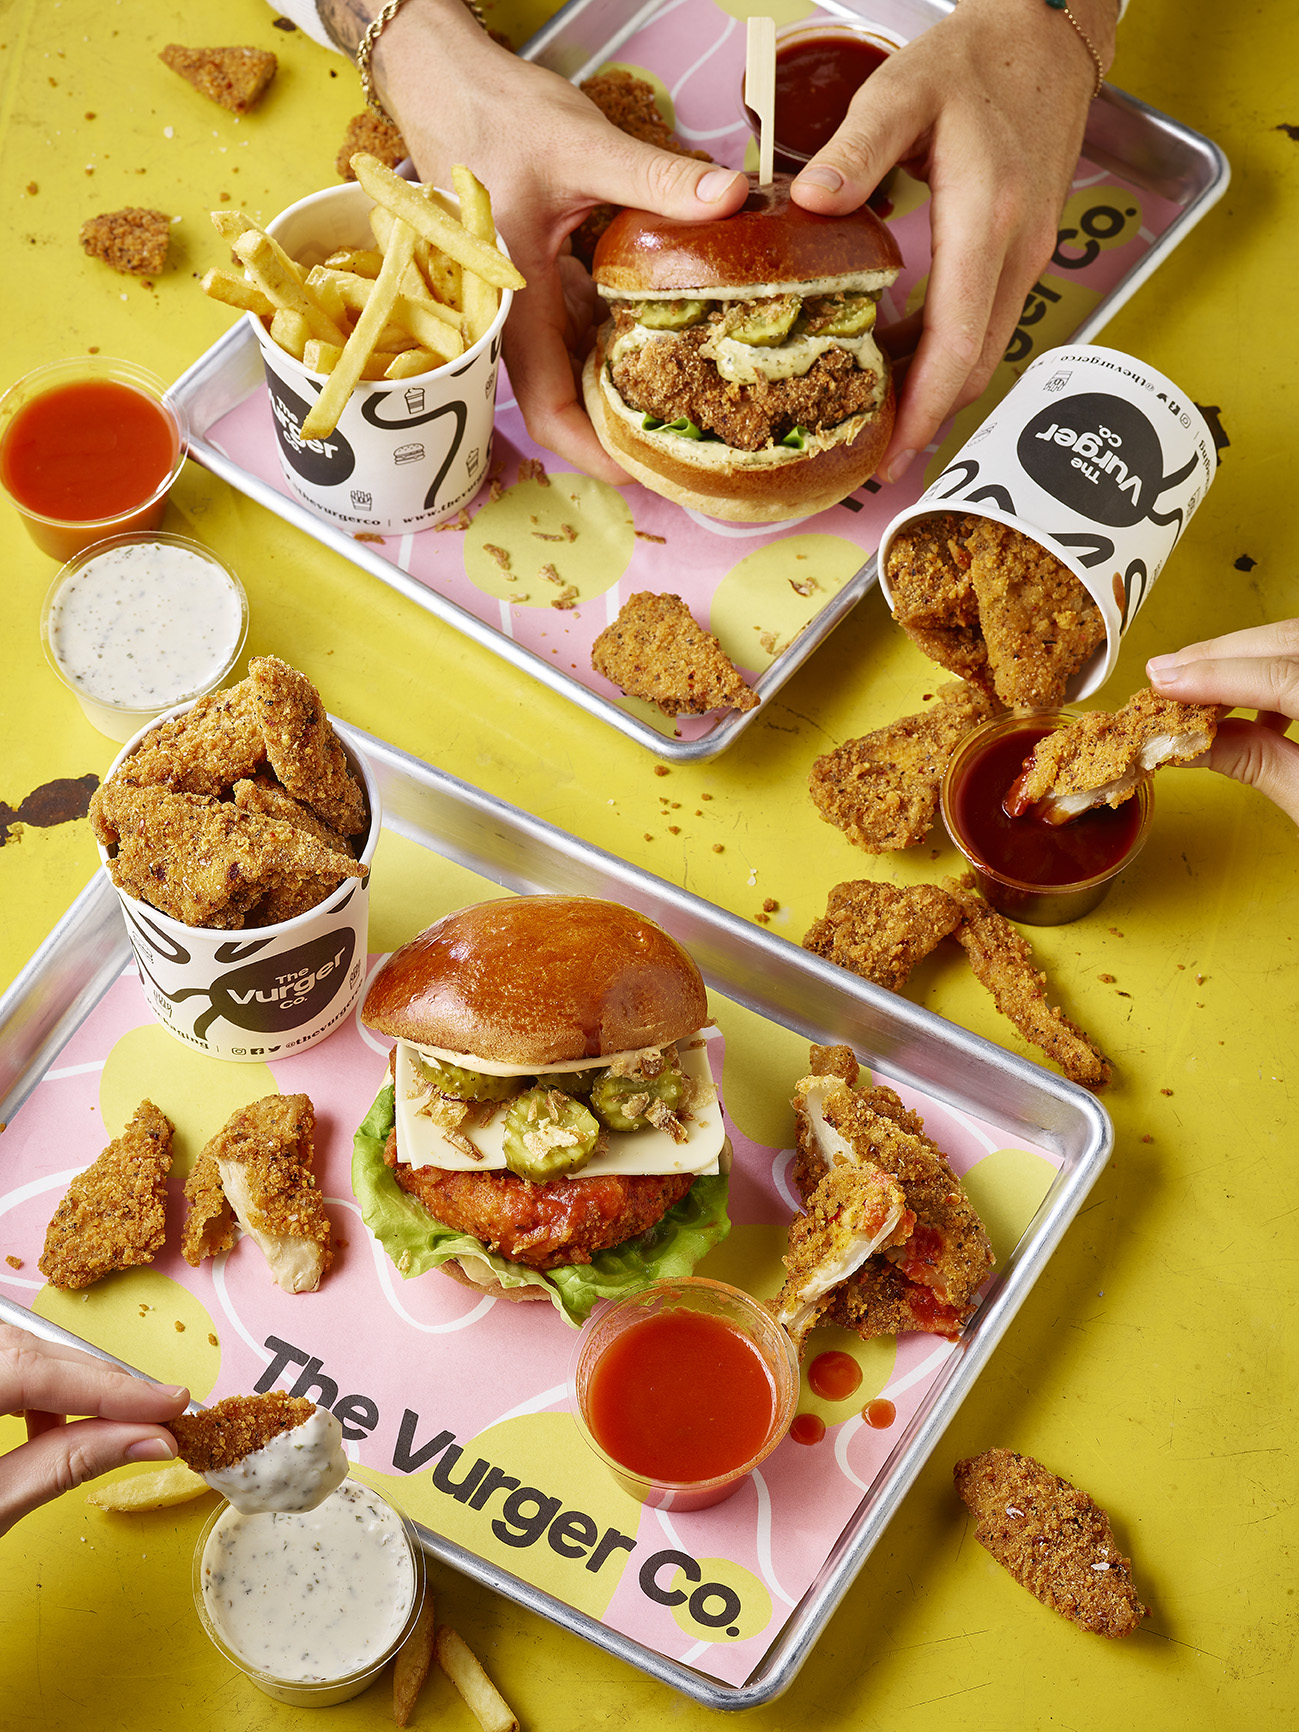 Soul-satisfying Vegan Food by The Vurger Co.